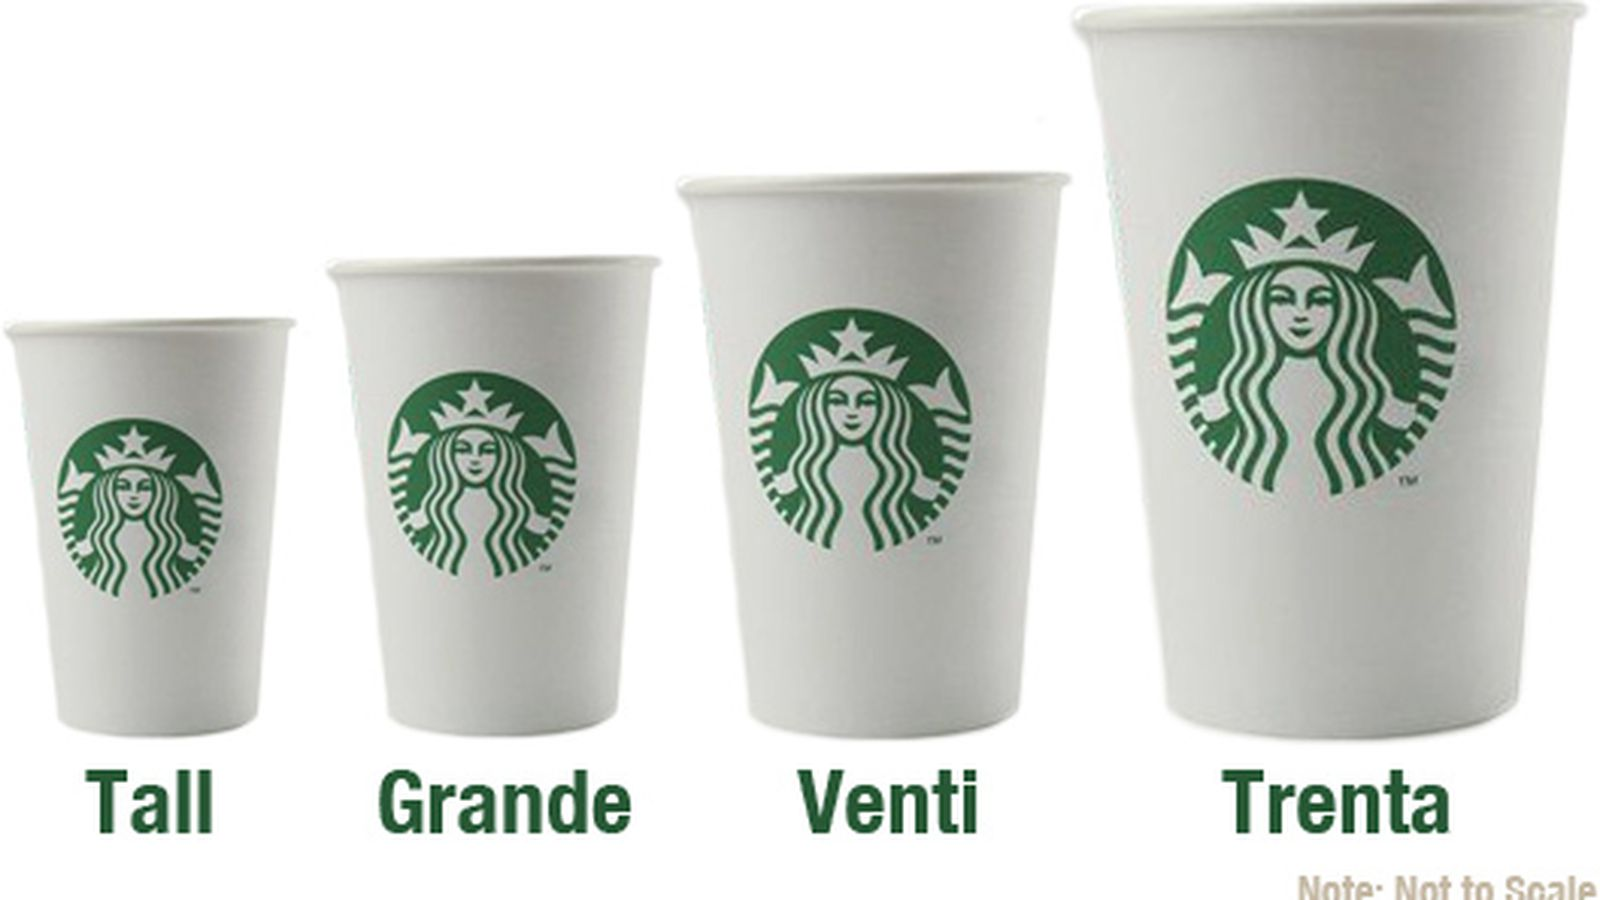 starbucks coffee Find great deals on ebay for starbucks coffee mug in starbucks collectibles shop with confidence.